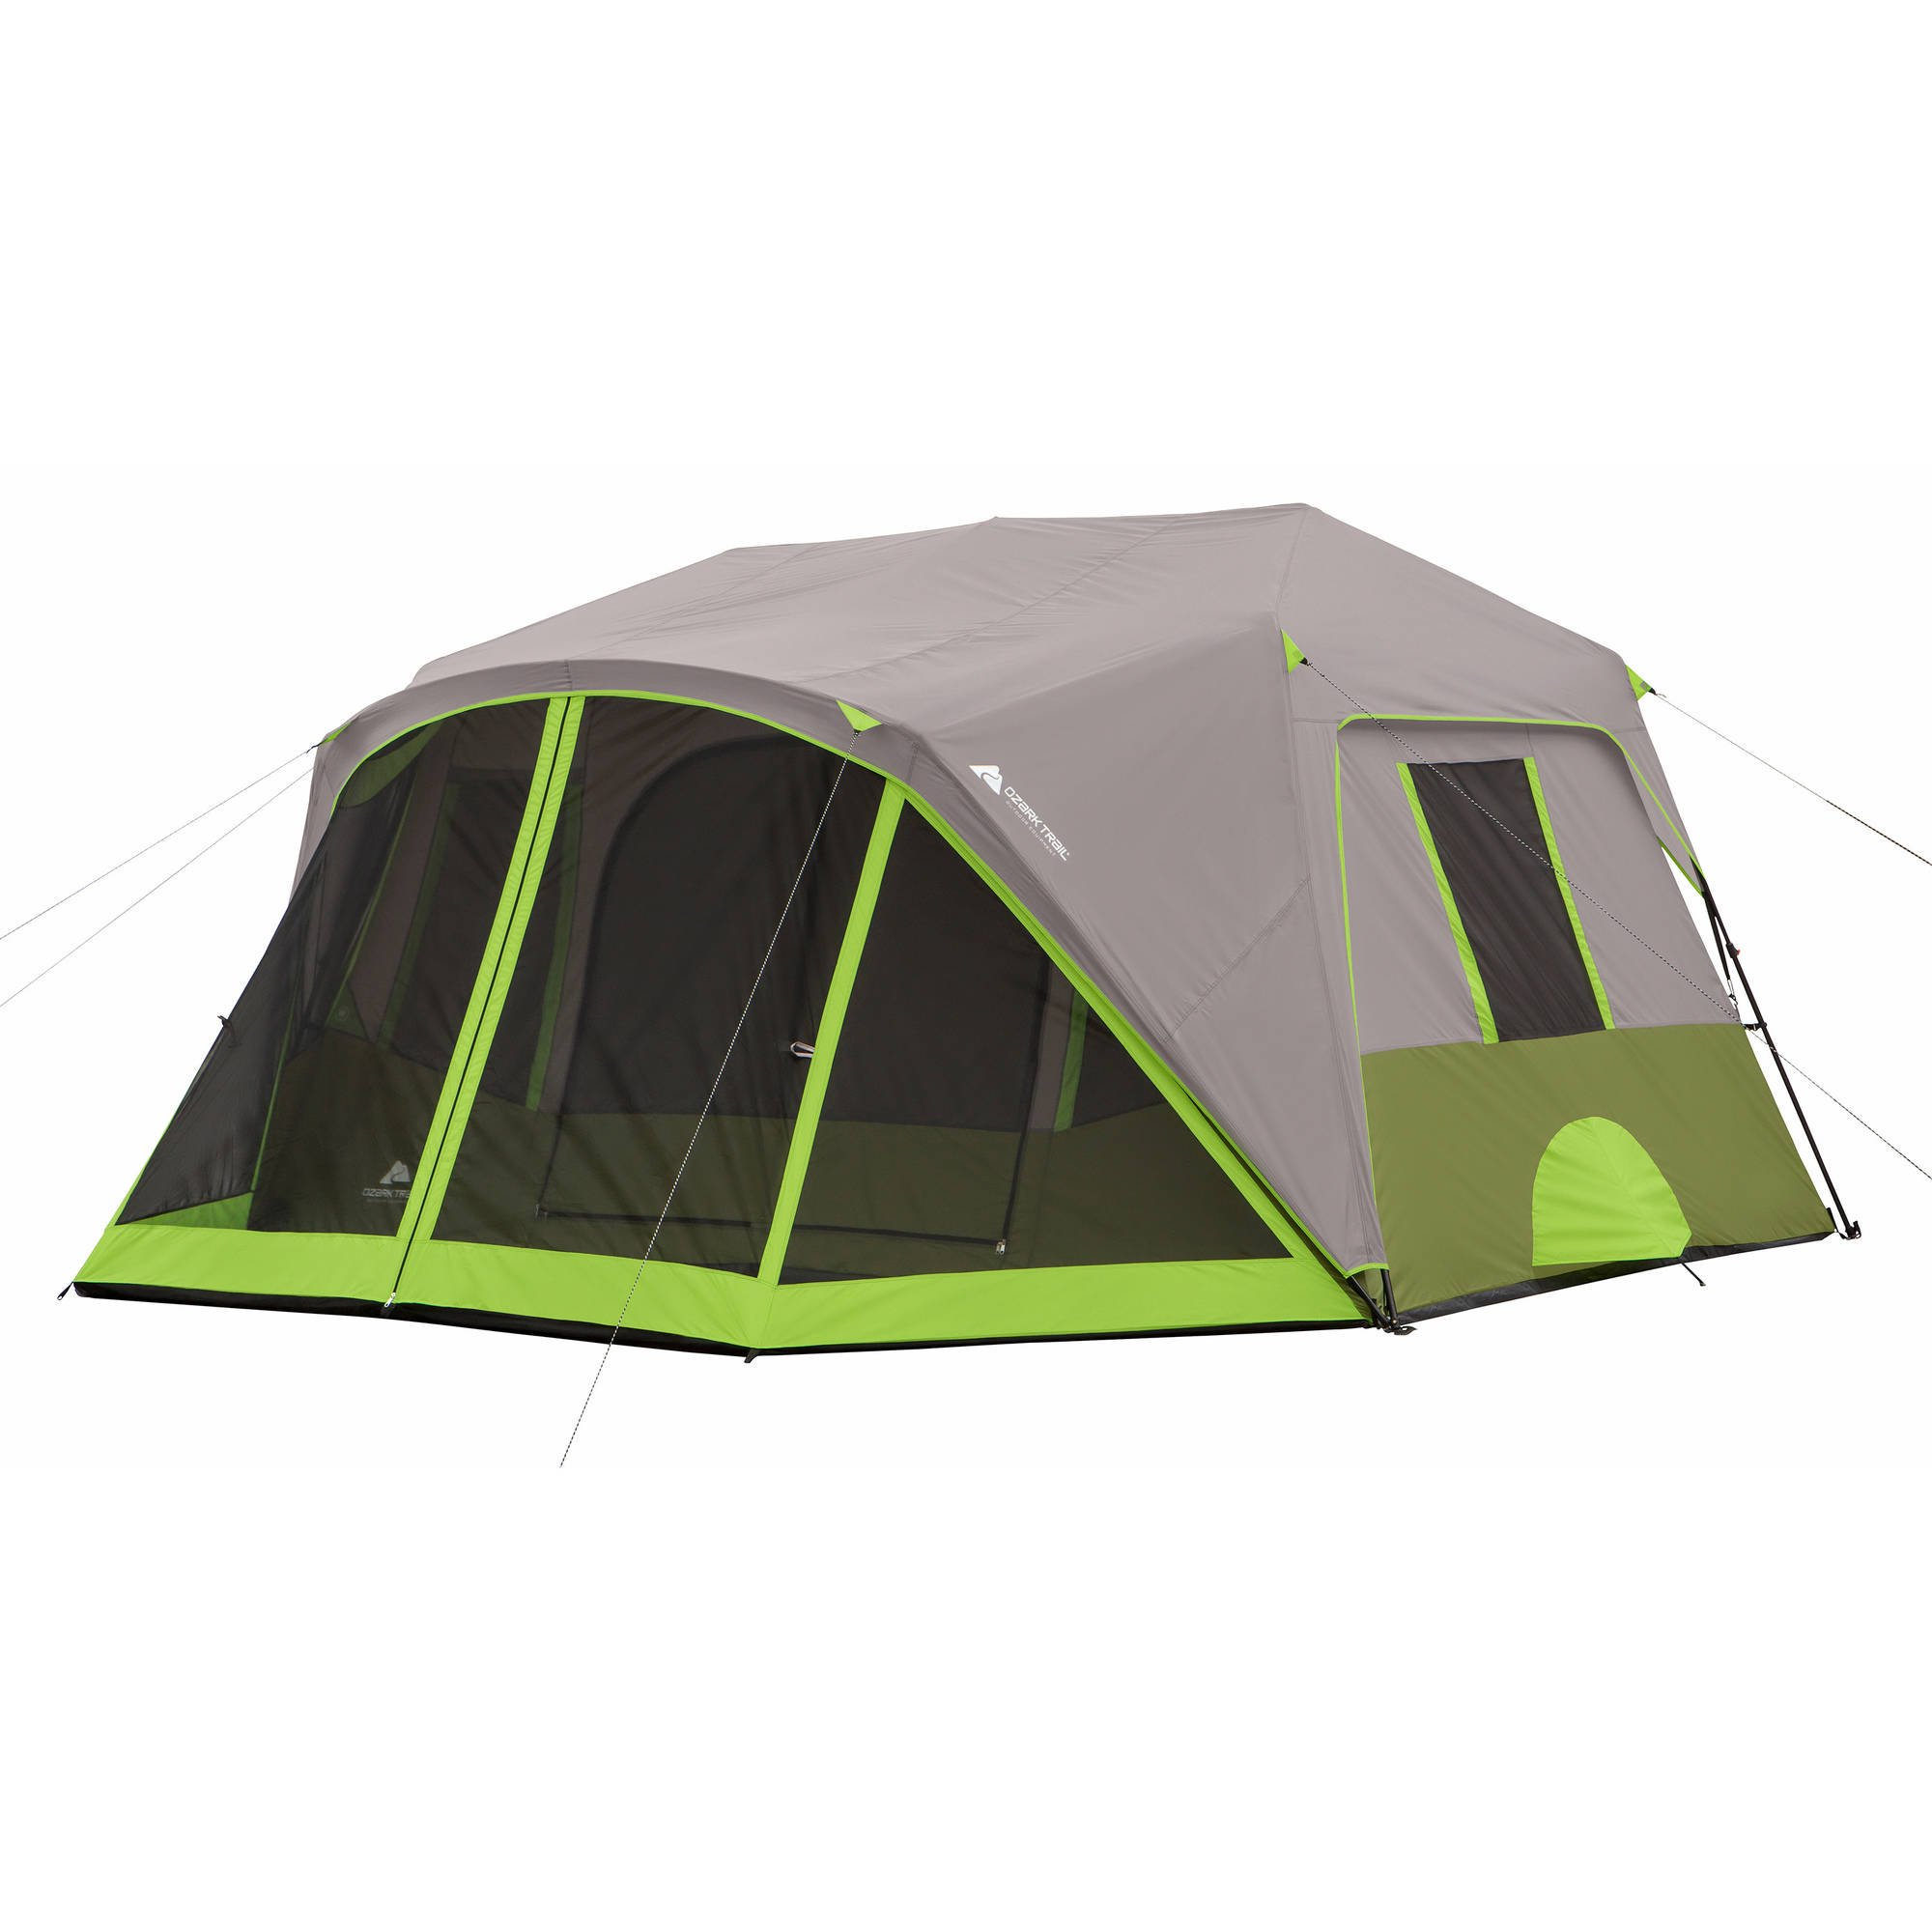 Ozark Trail 9 Person 2 Room Instant Cabin Tent with Screen Room  sc 1 st  Walmart : walmart tent bundle - memphite.com